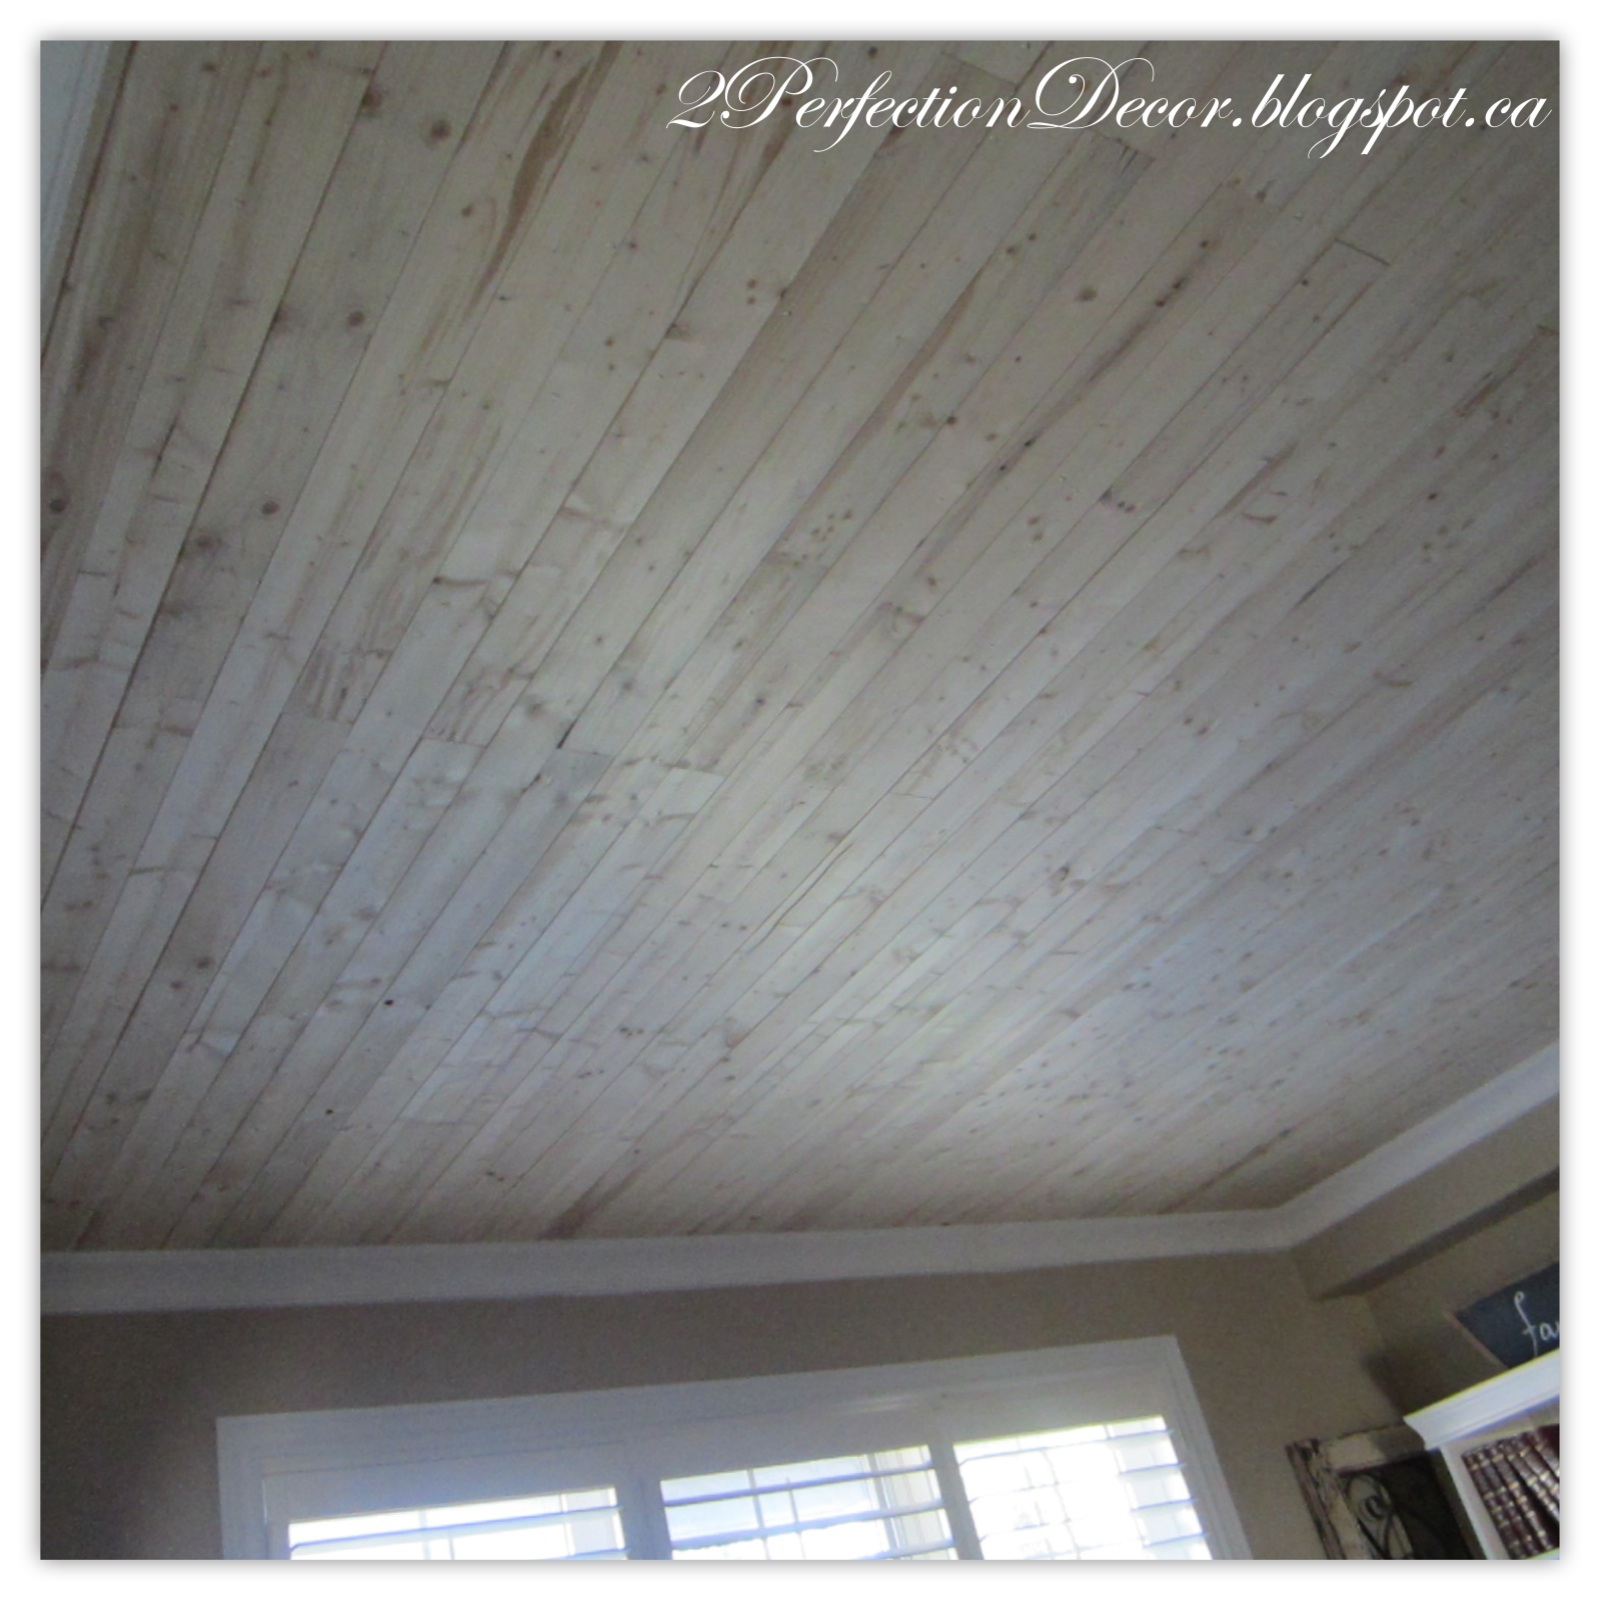 2Perfection Decor: Living Room Plank wood ceiling